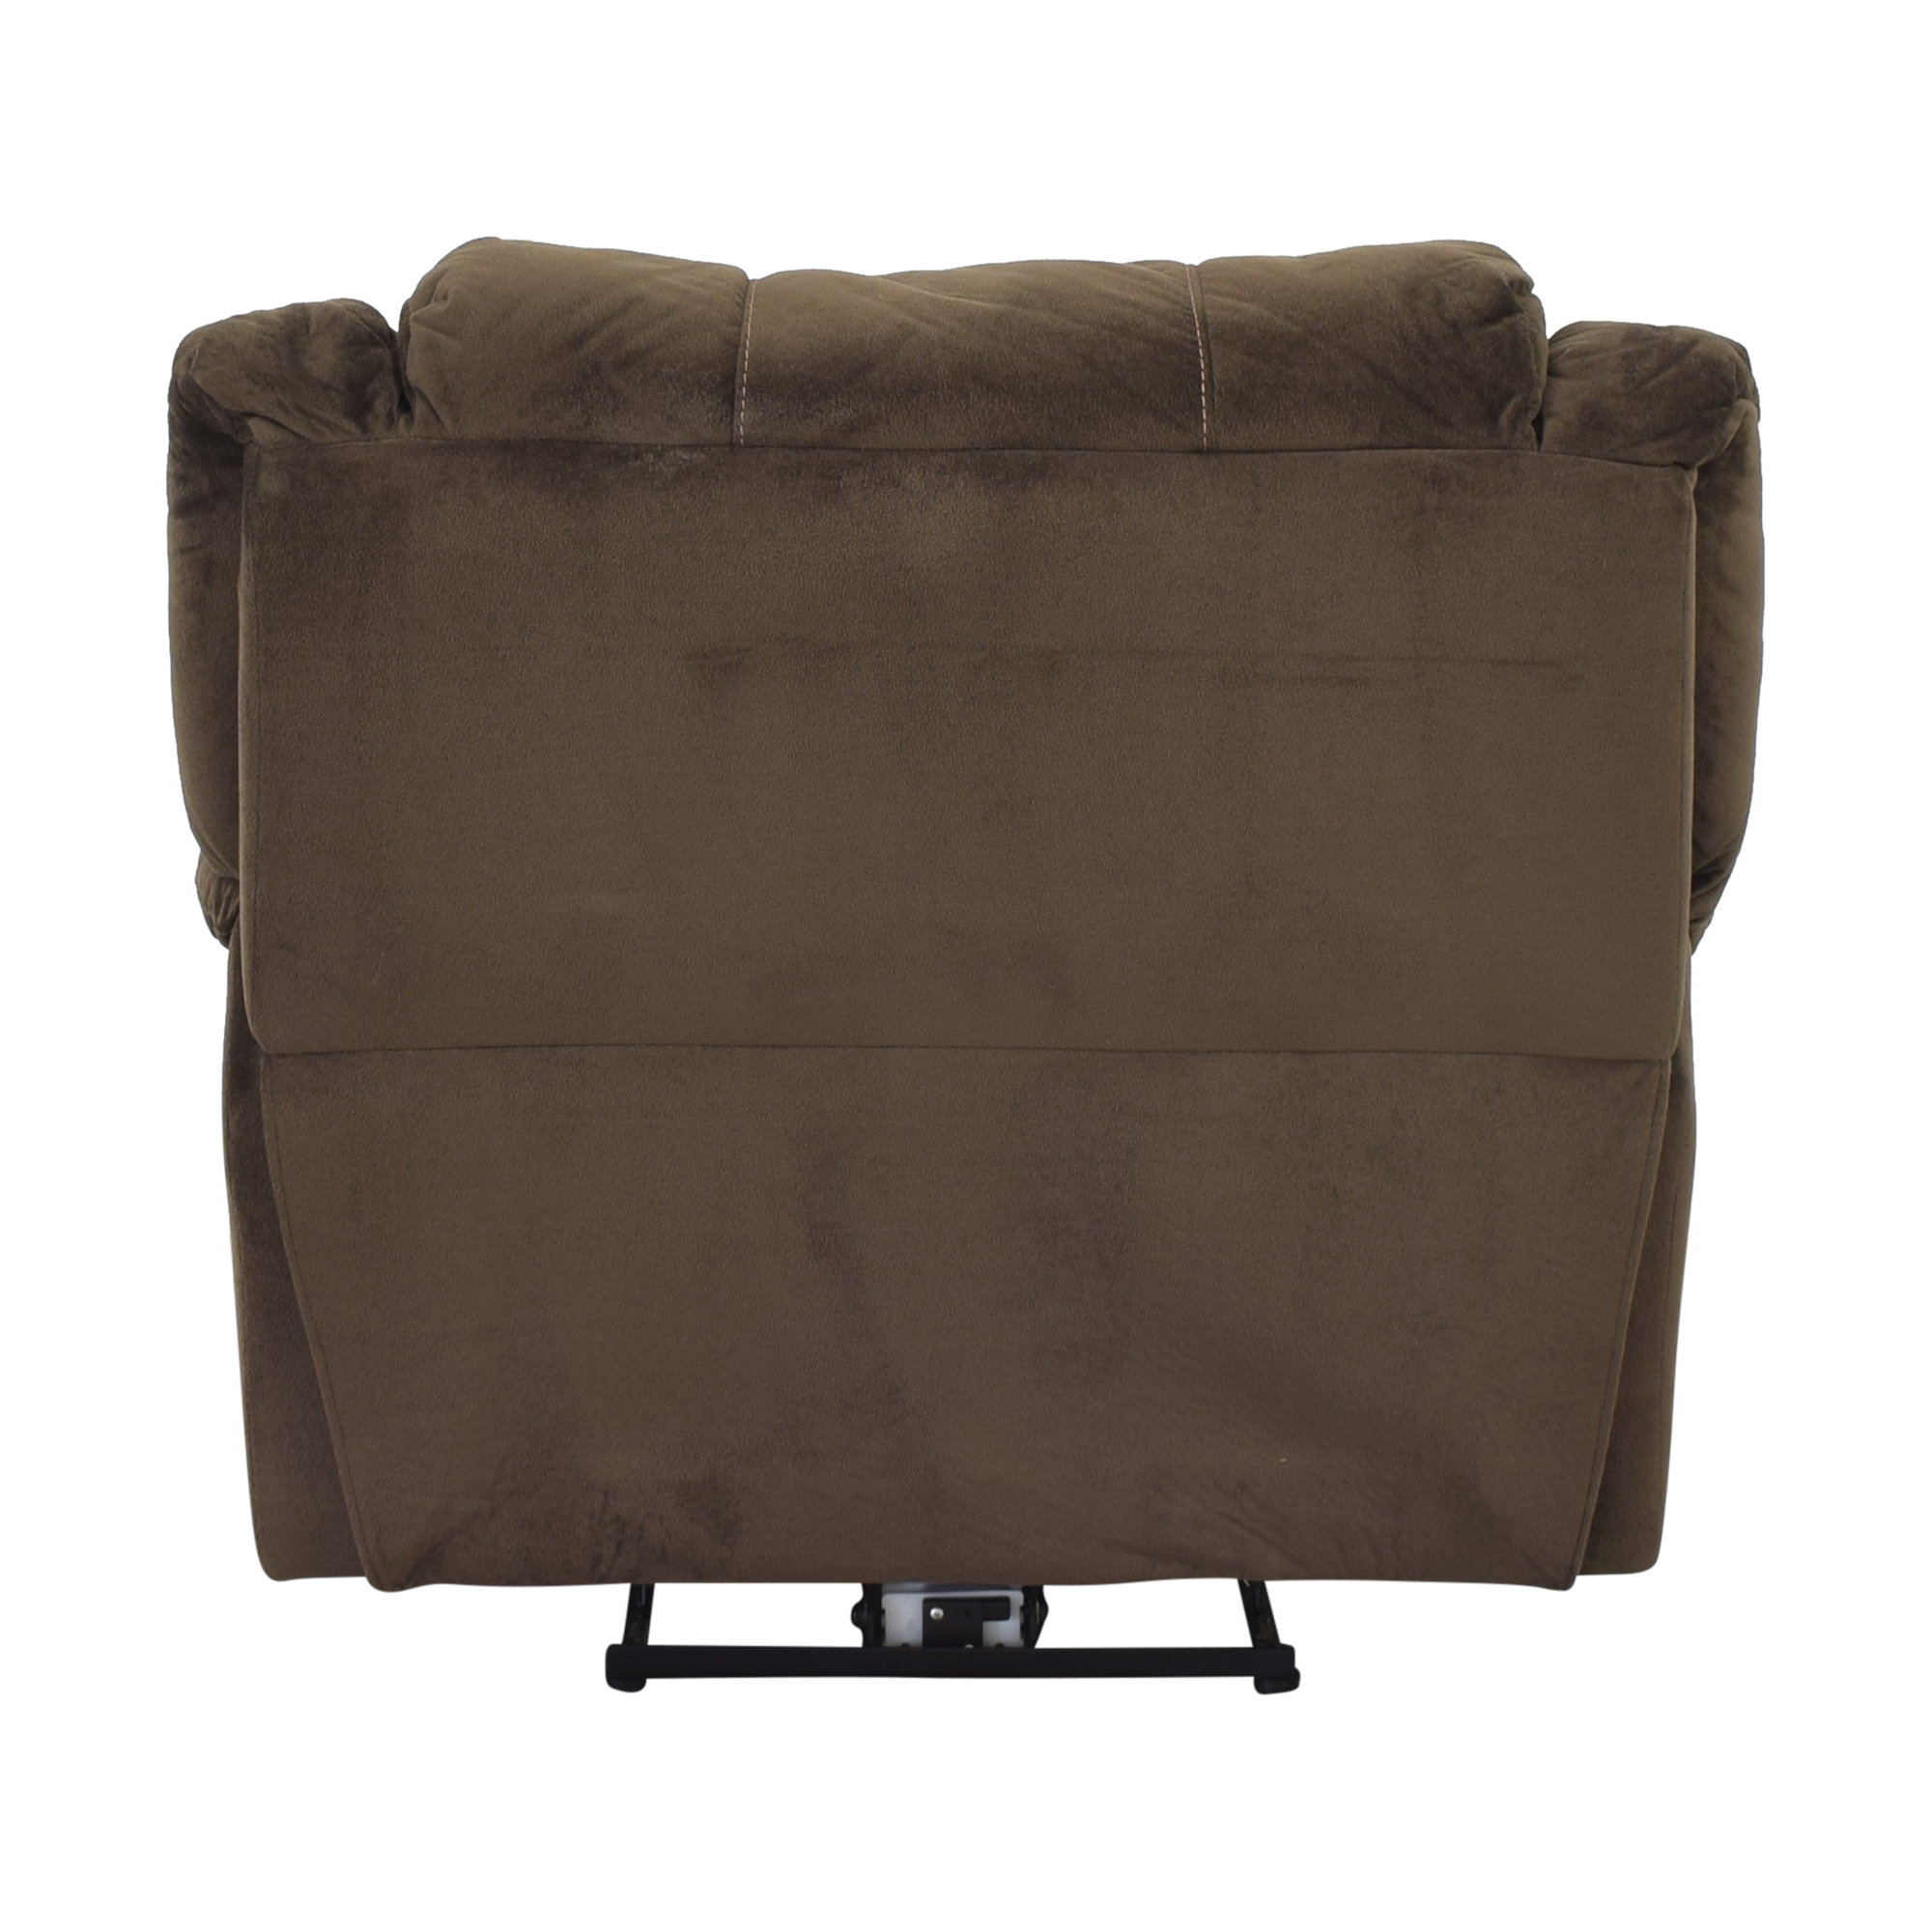 Raymour & Flanigan Raymour & Flanigan Power Recliner for sale